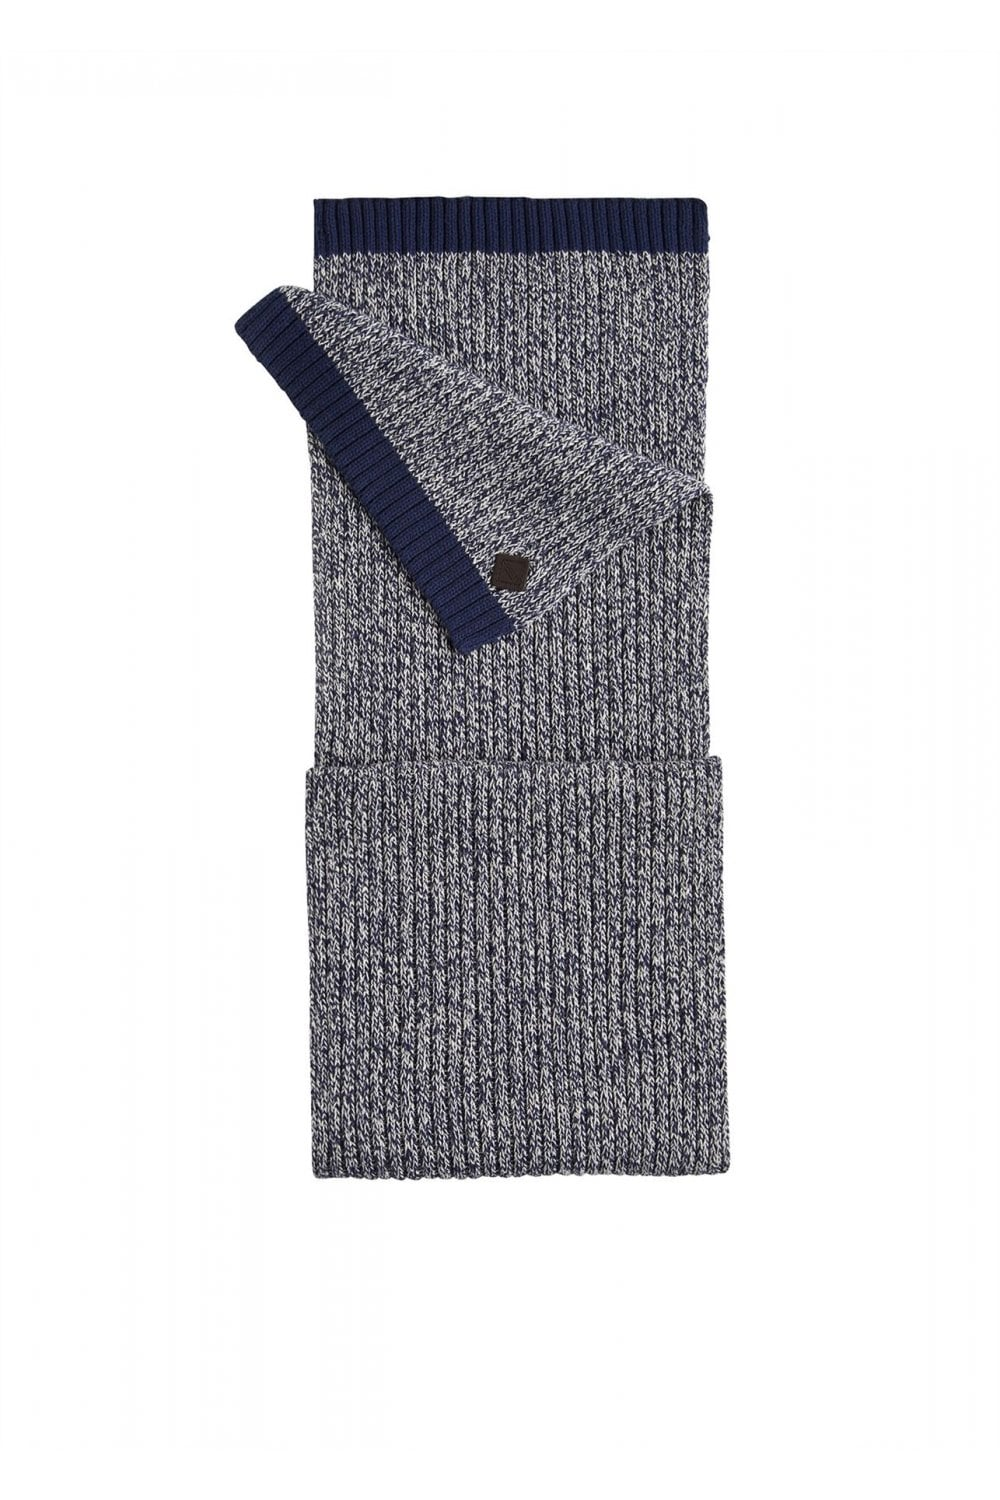 e1a16d40c49abd Joules Mens Oarswell Knitted Scarf - Navy/Cream - Accessories from ...